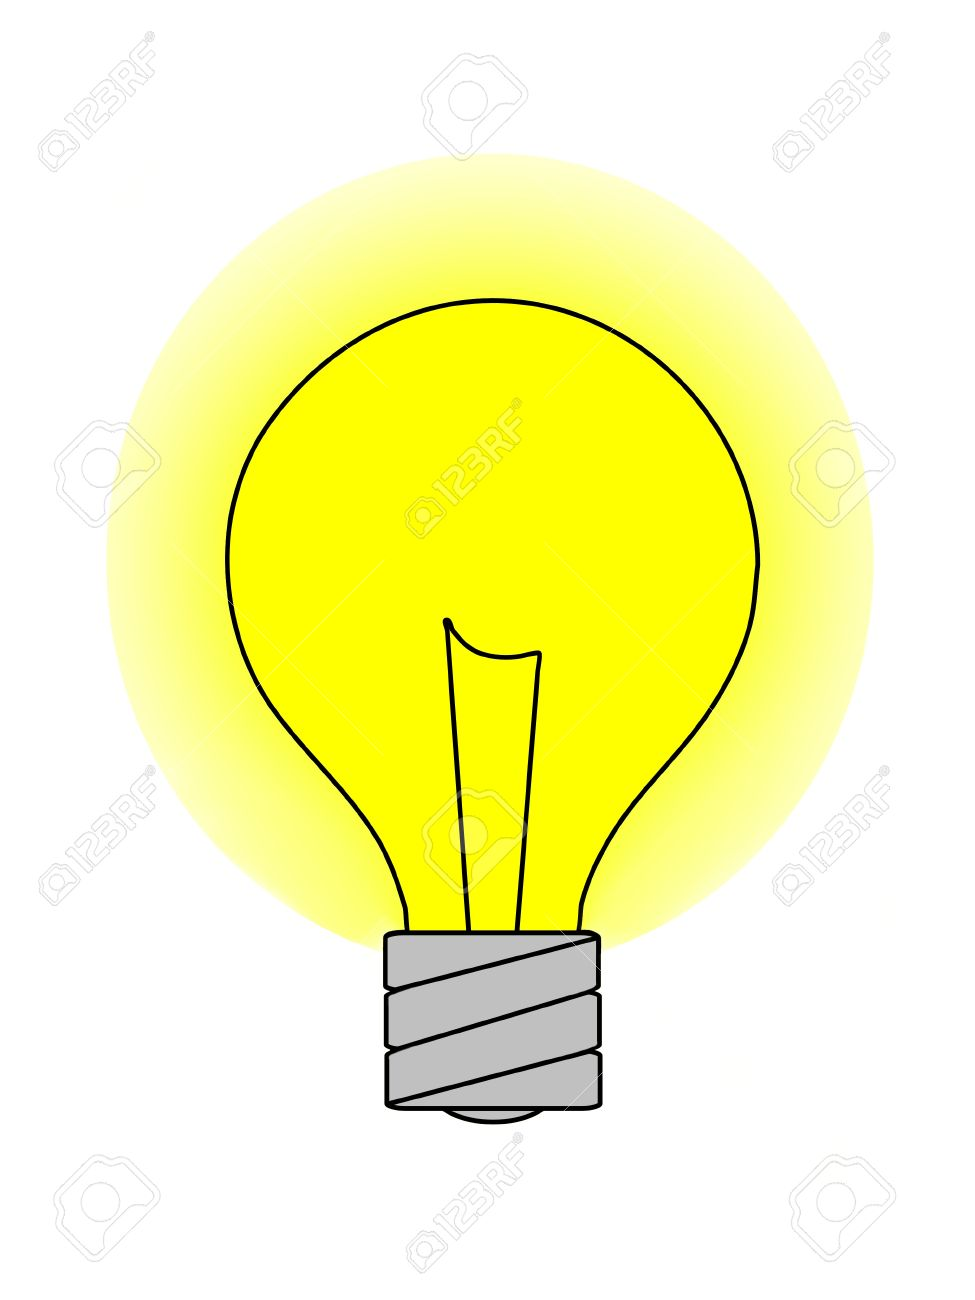 A Graphic Of A Light Bulb With A Yellow Glow. Isolated On A Solid.